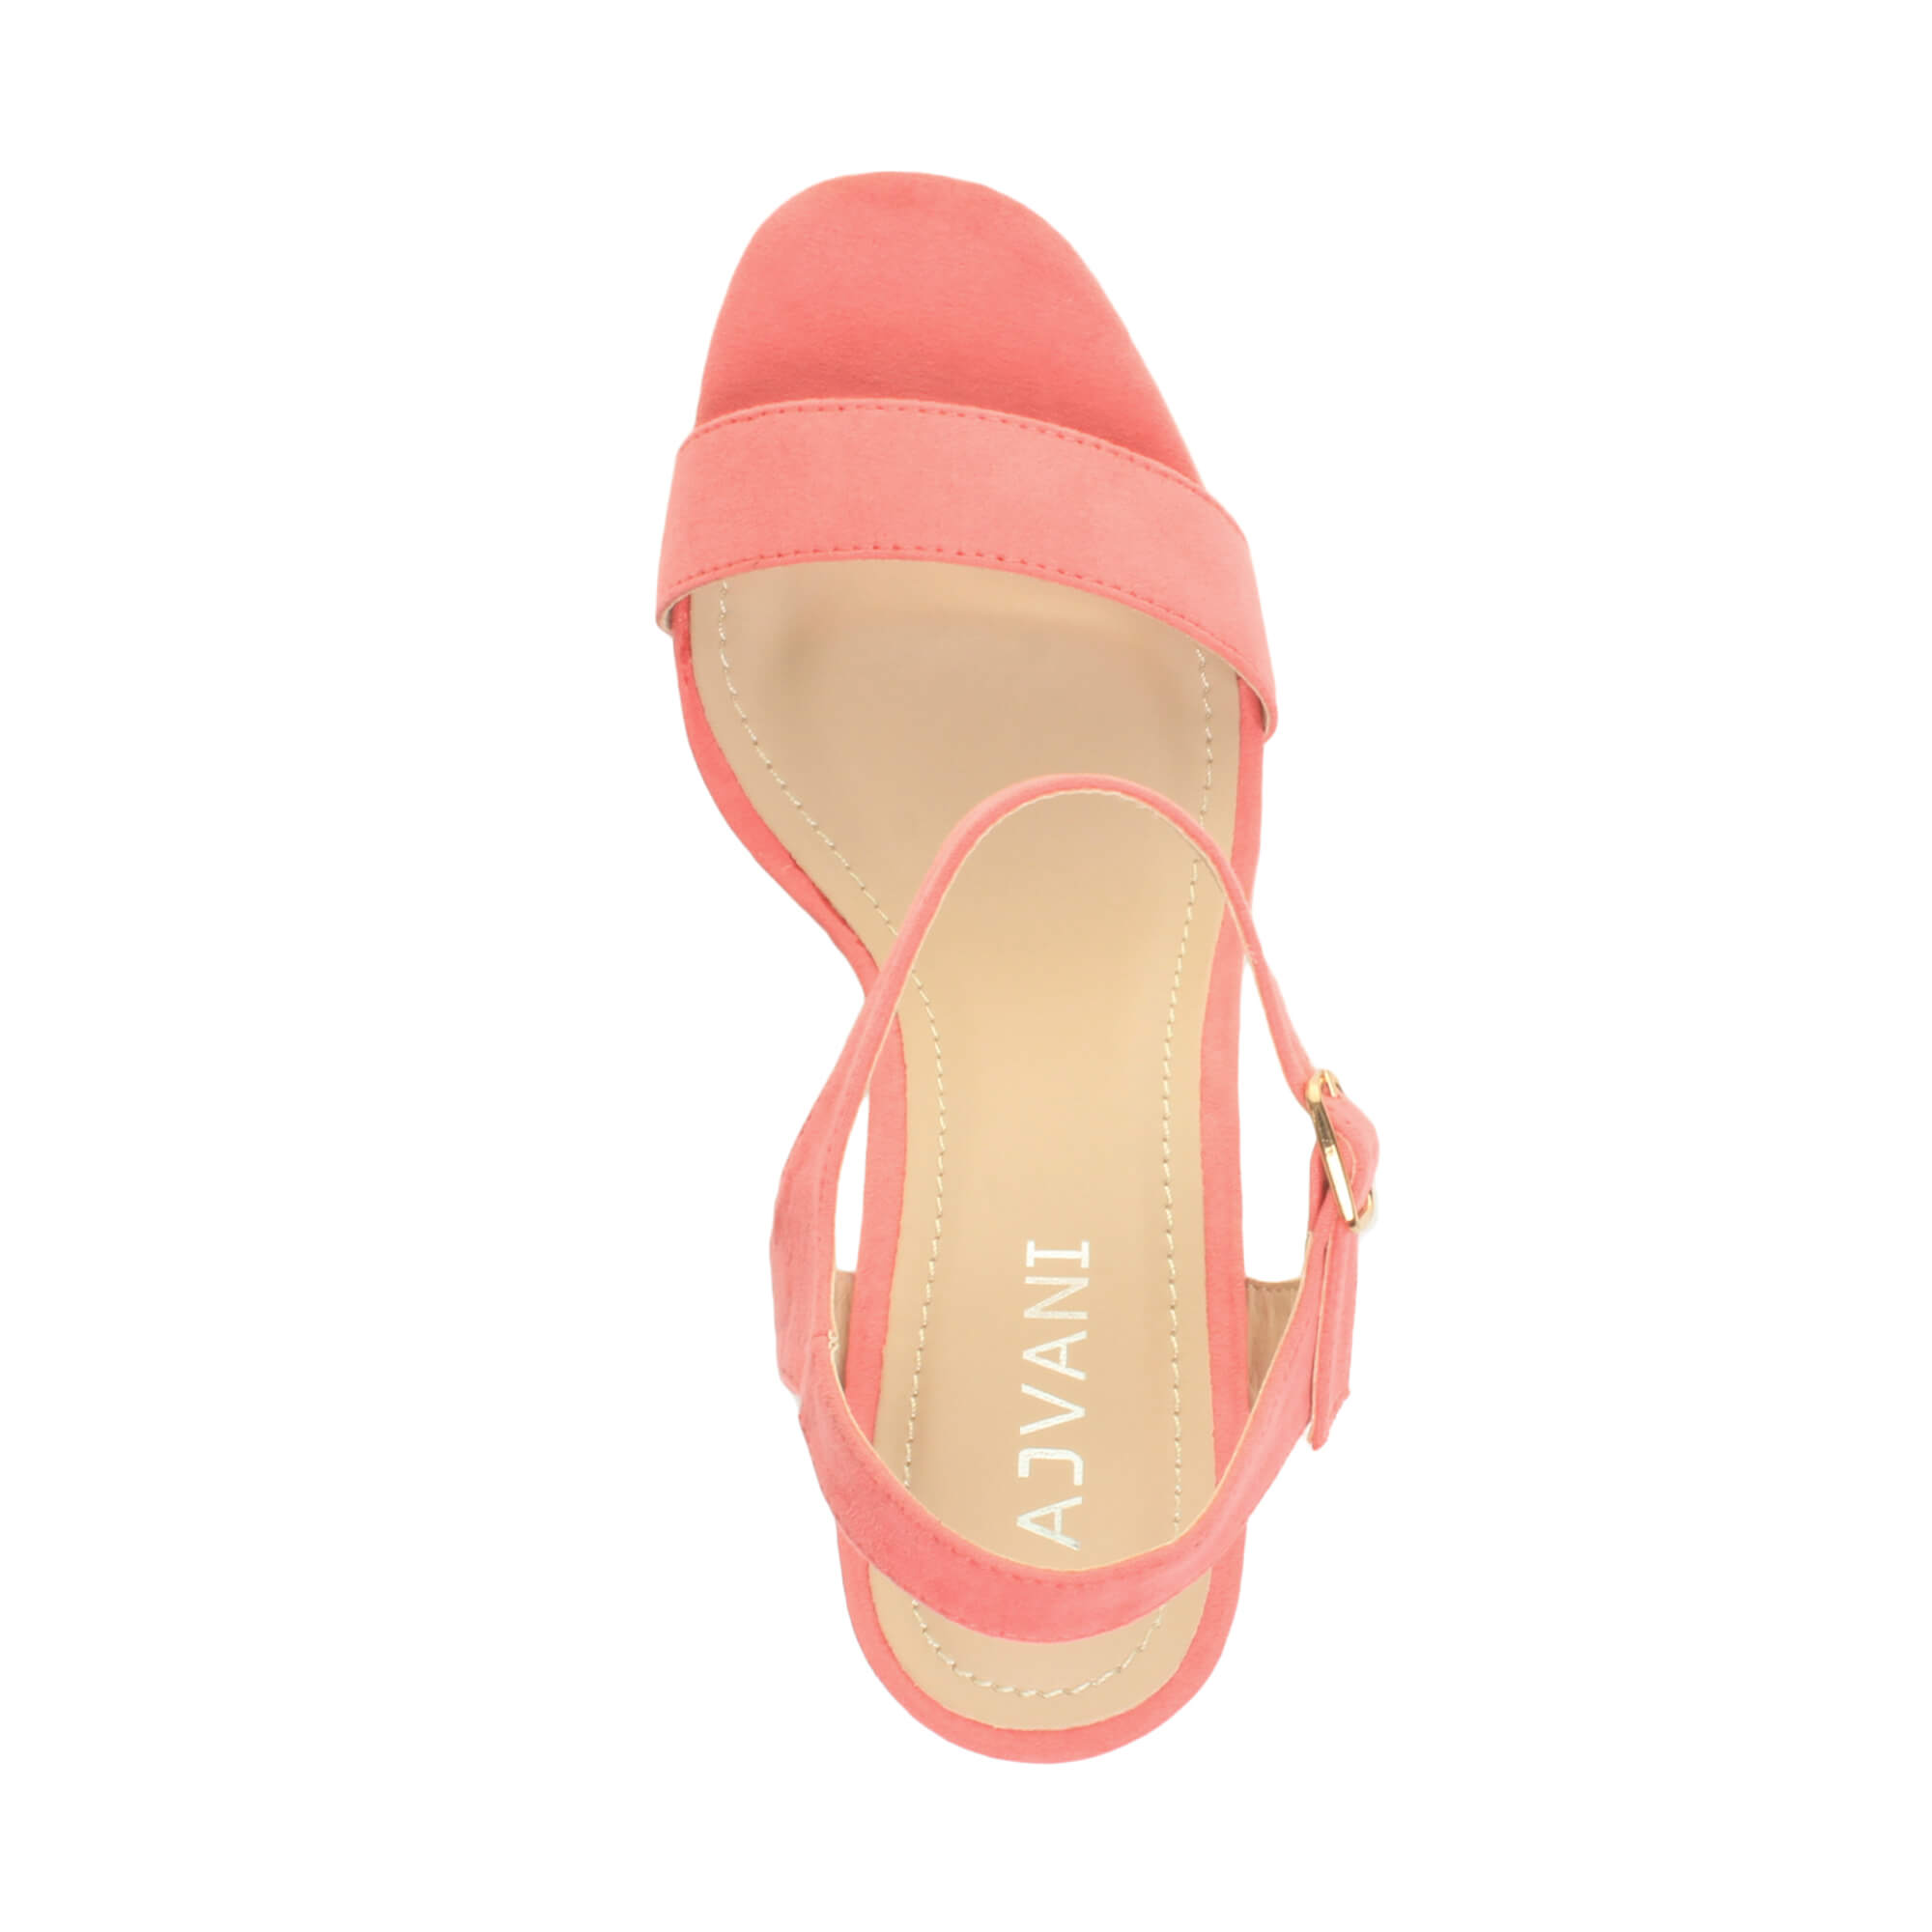 WOMENS-LADIES-HIGH-HEEL-BUCKLE-STRAPPY-BASIC-BARELY-THERE-SANDALS-SHOES-SIZE thumbnail 28